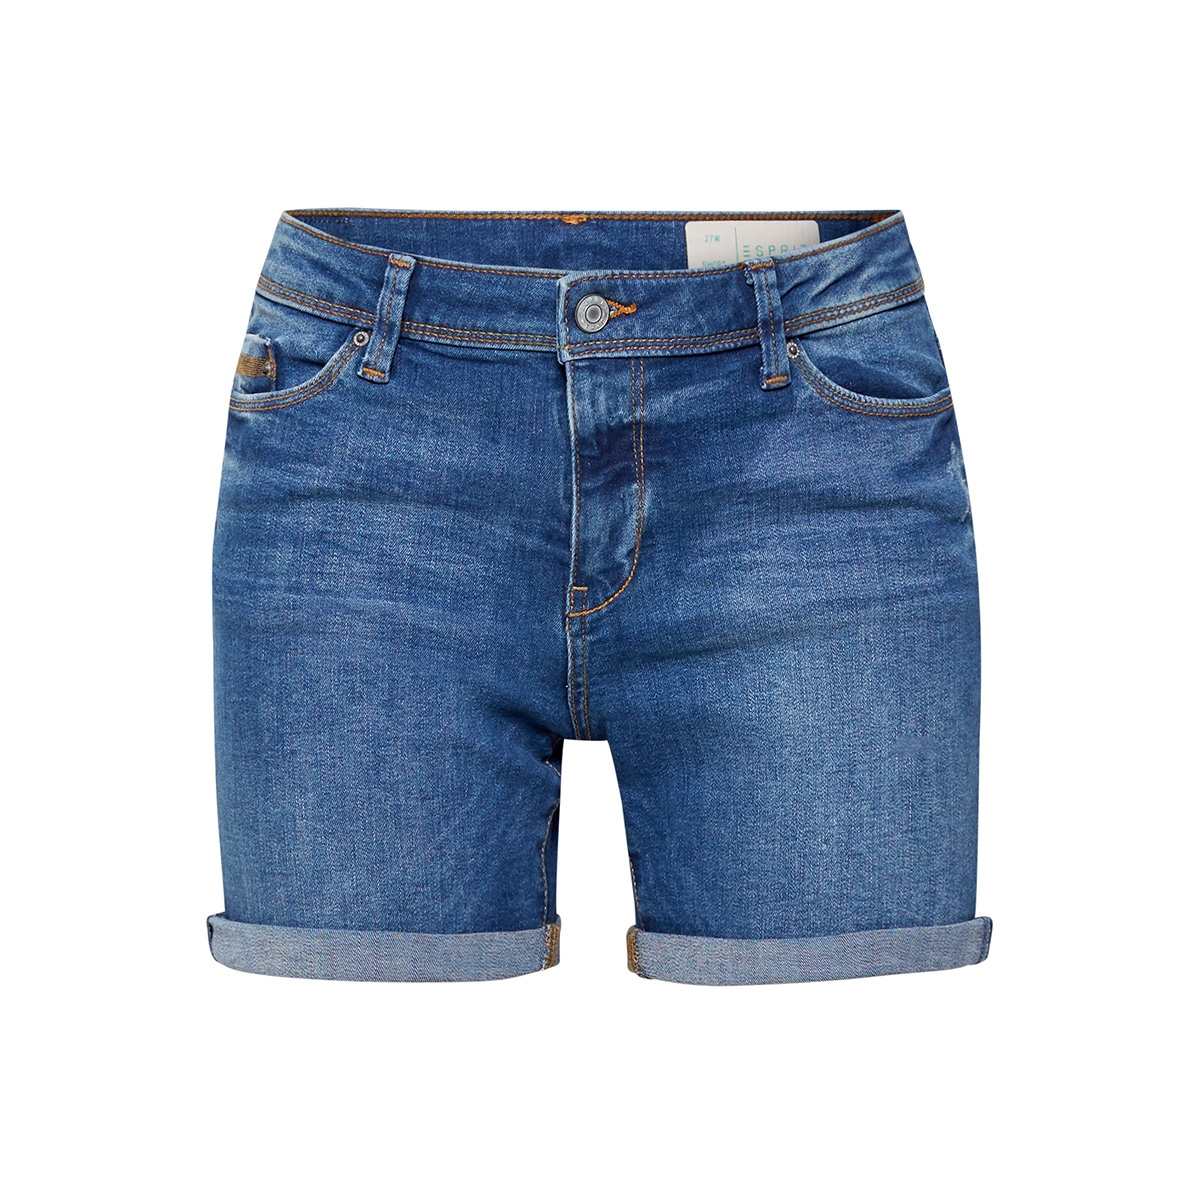 denim short met stretch 049ee1c001 esprit korte broek e902